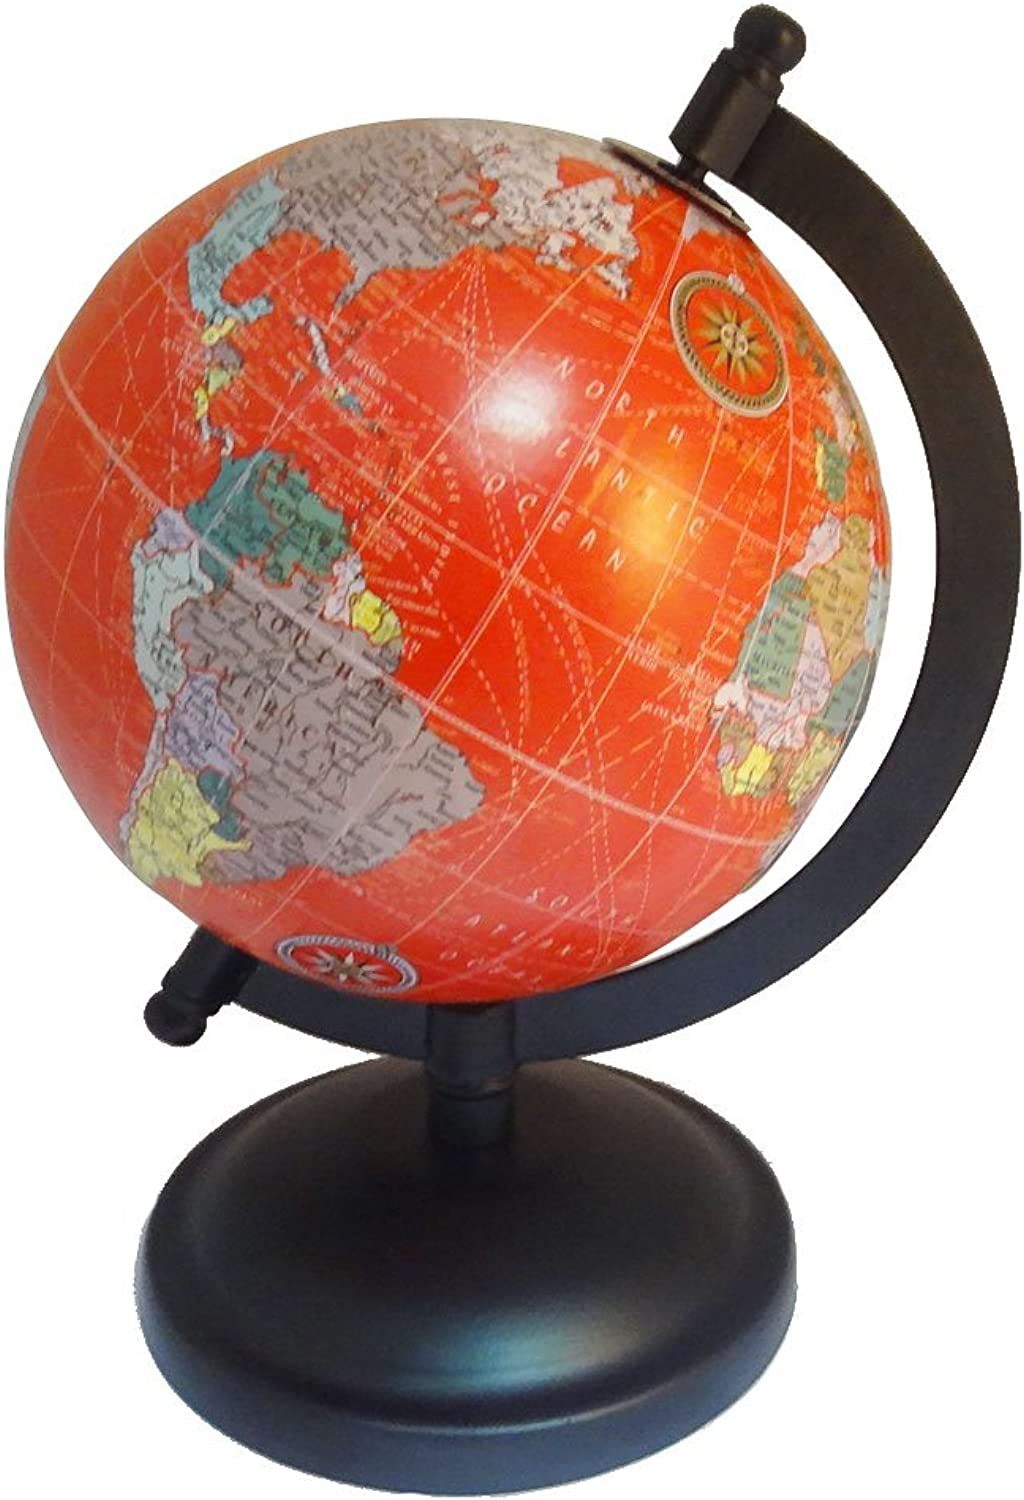 Hand Made World Map Desktop Small redating World Earth Globe Pink Ocean 5  Plastic Ball Table Décor 8  Tall Globes